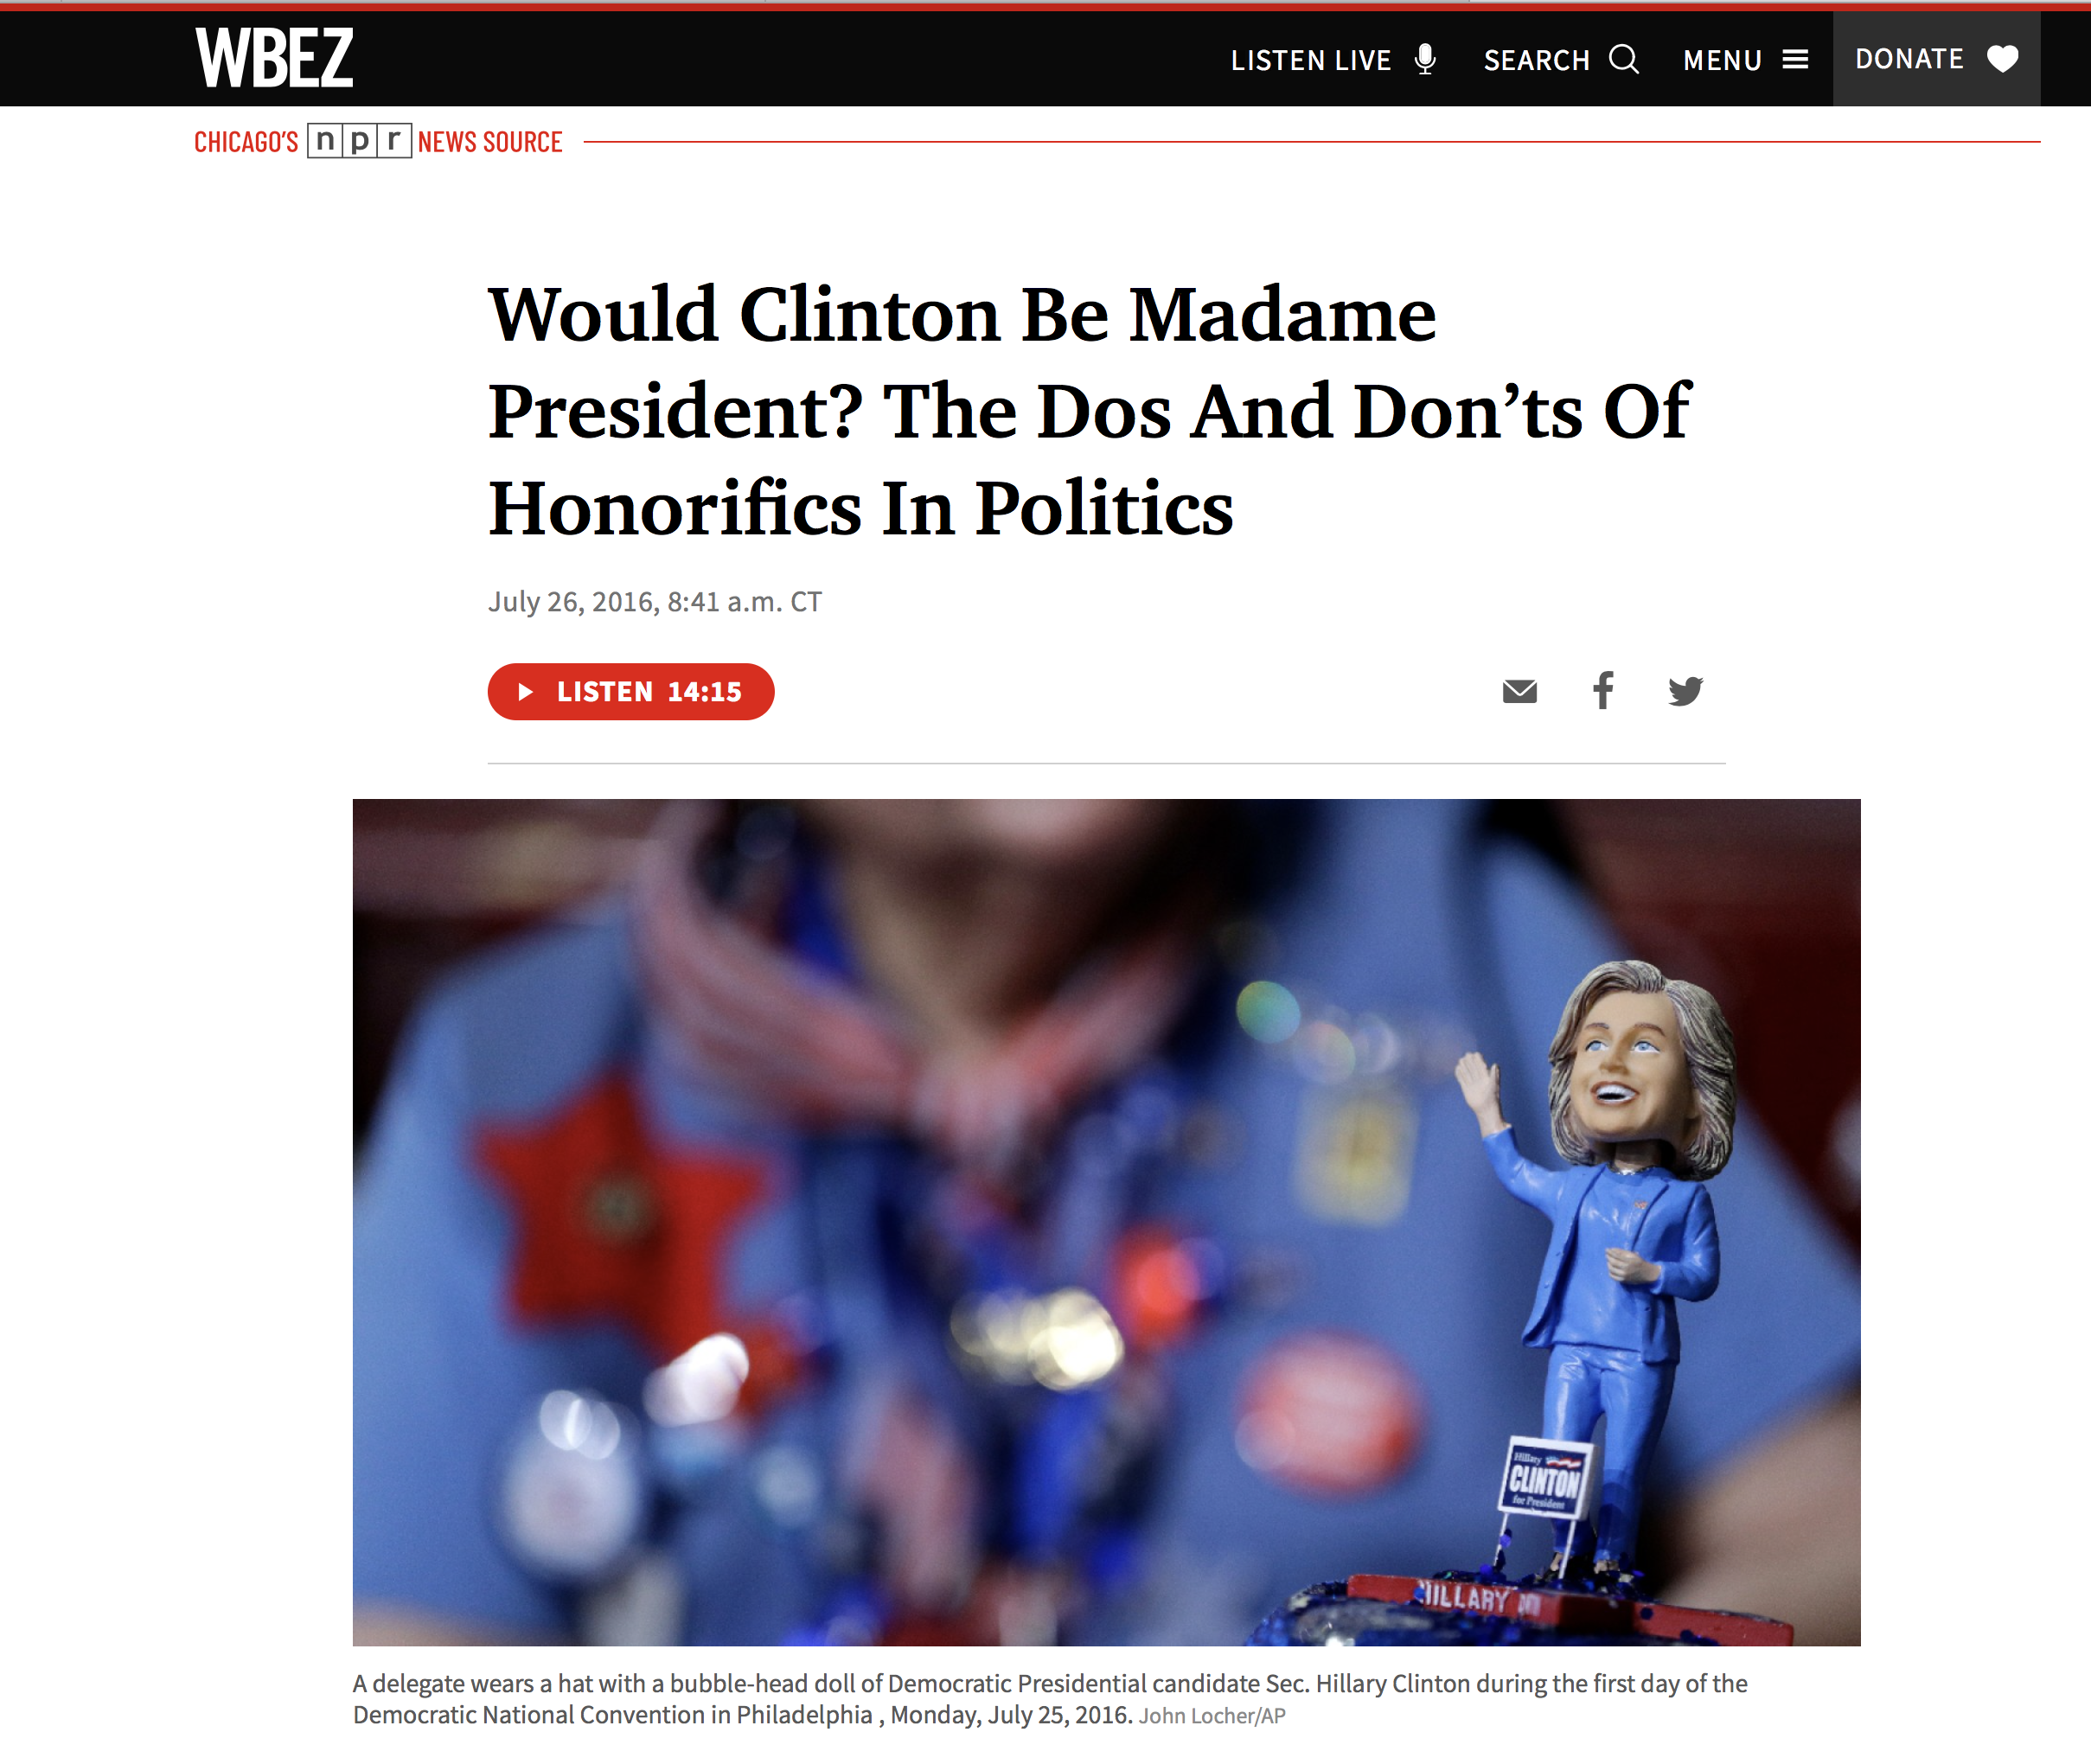 Would Clinton Be Madame President? The Dos And Don'ts Of Honorifics In Politics.